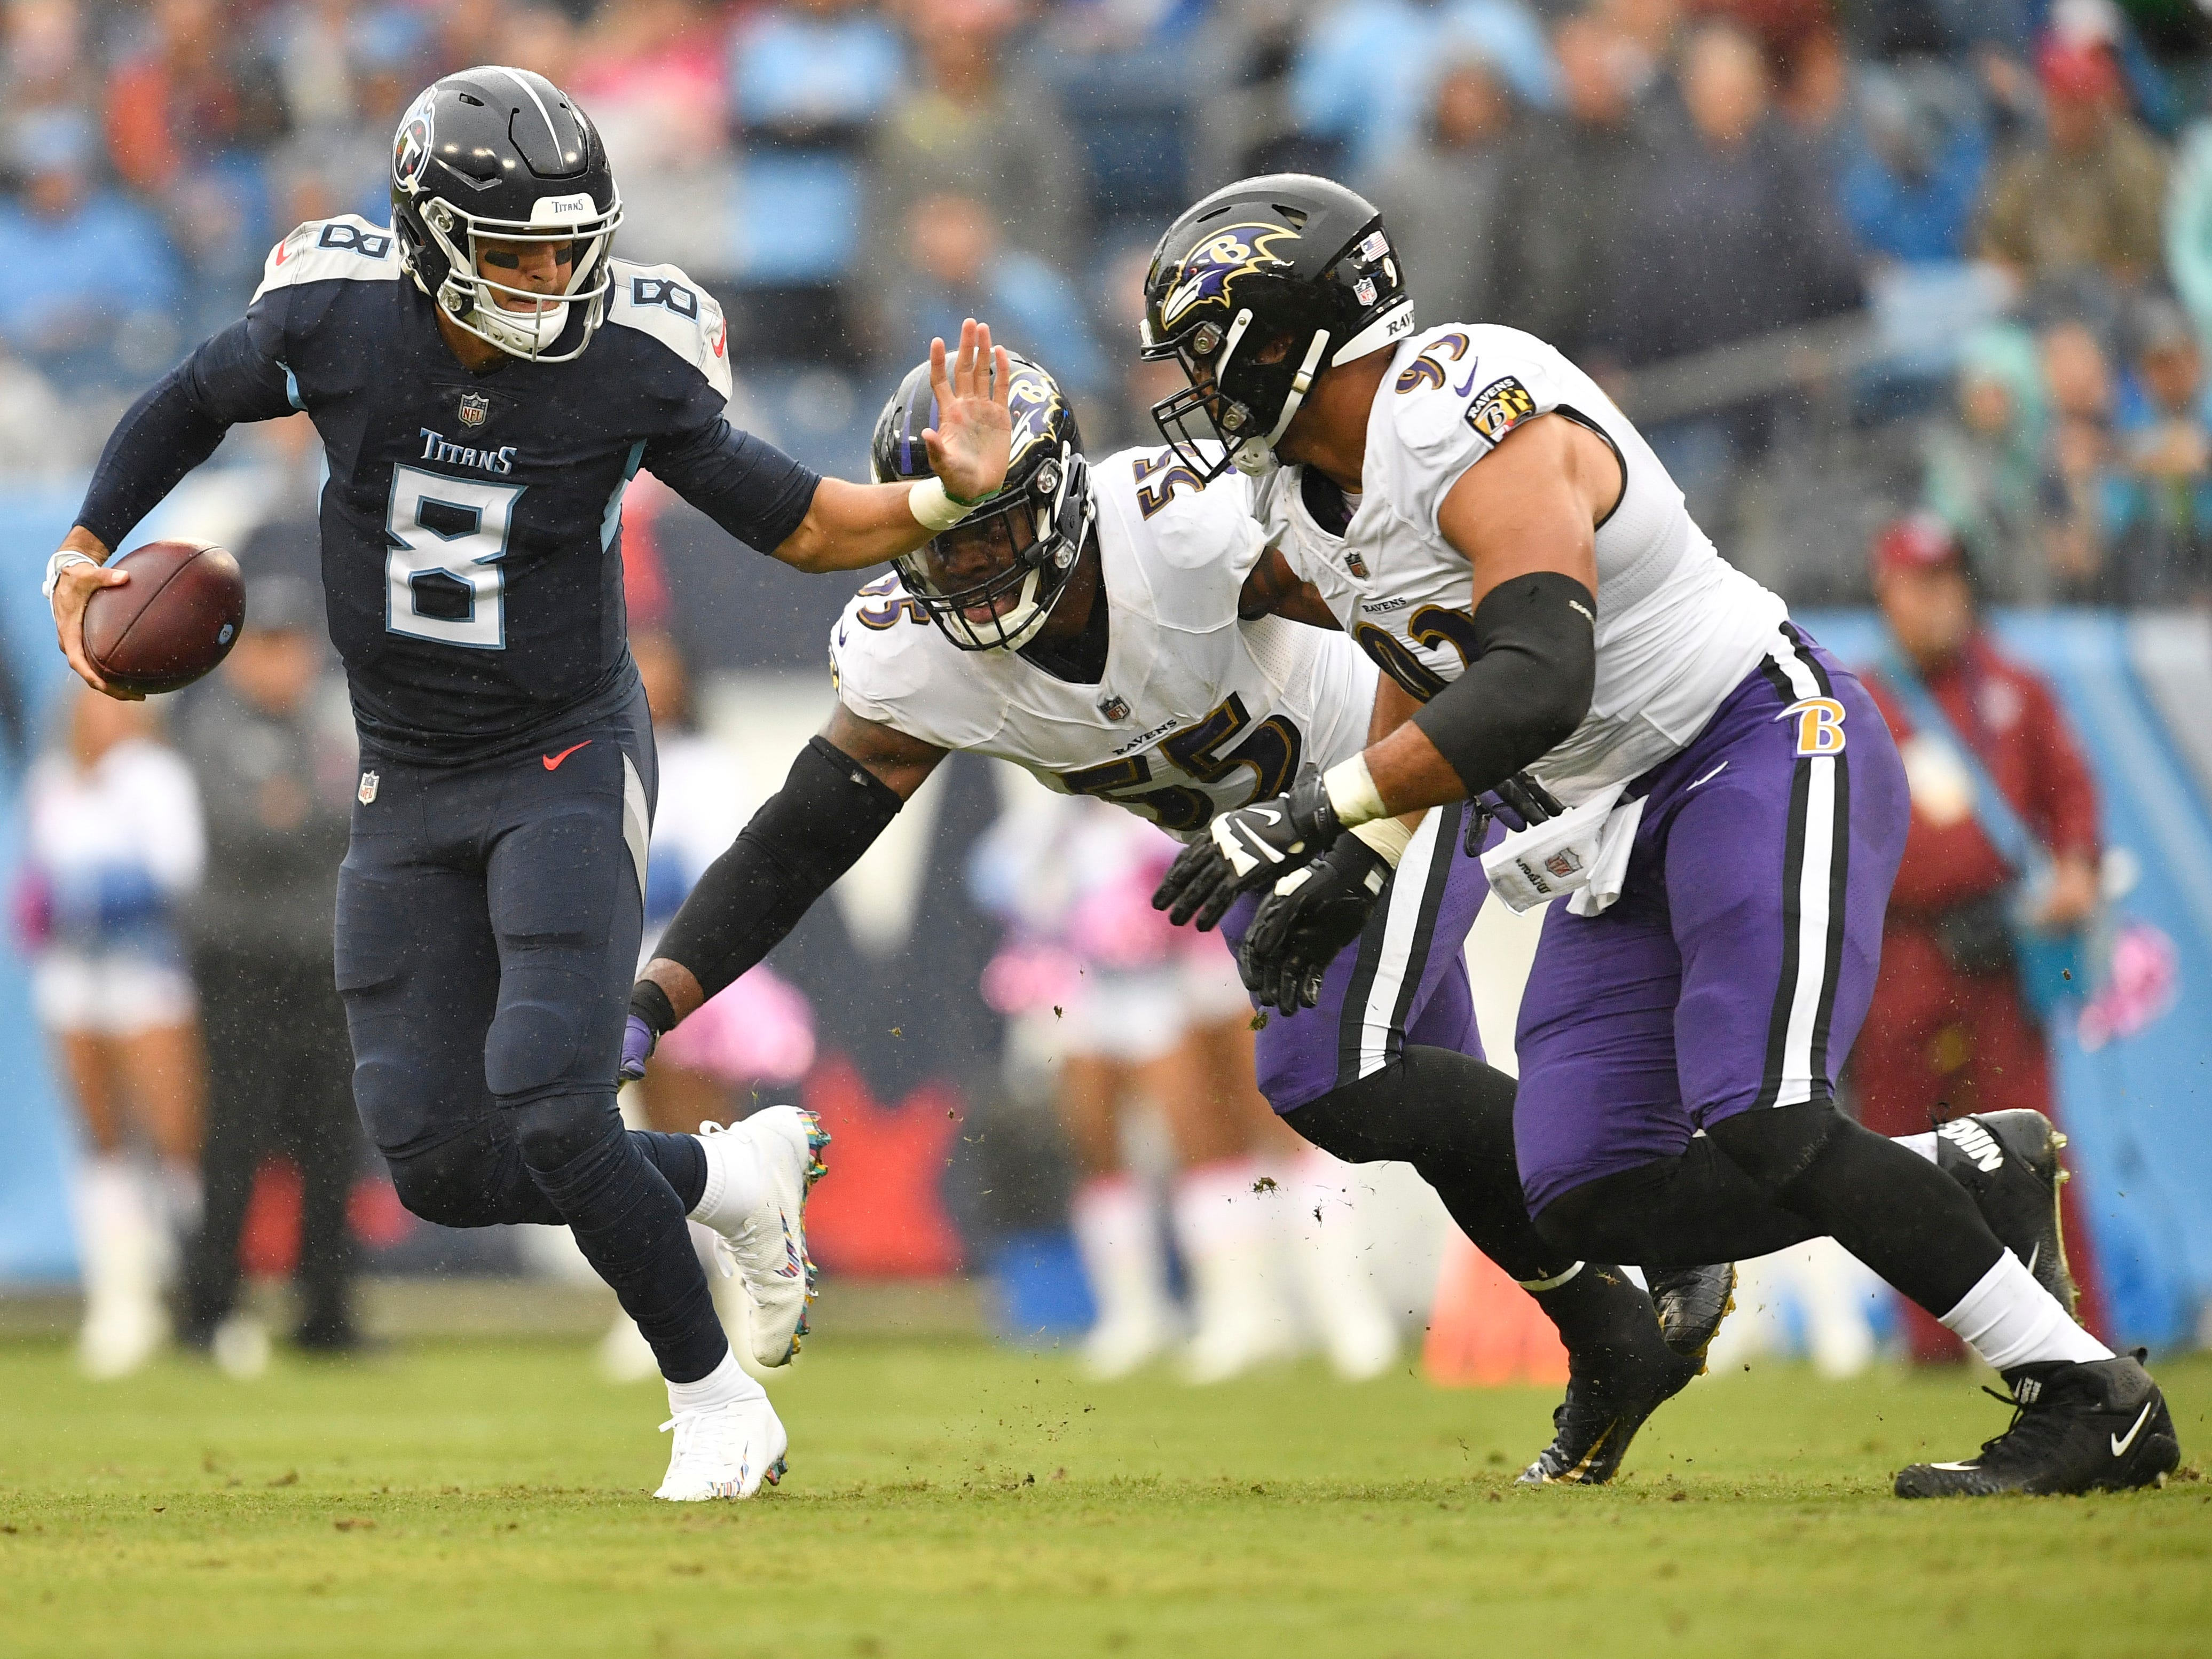 Titans quarterback Marcus Mariota (8) tries to scramble away from Ravens linebacker Terrell Suggs (55) and  defensive end Chris Wormley (93) in the first quarter at Nissan Stadium Sunday, Oct. 14, 2018, in Nashville, Tenn.